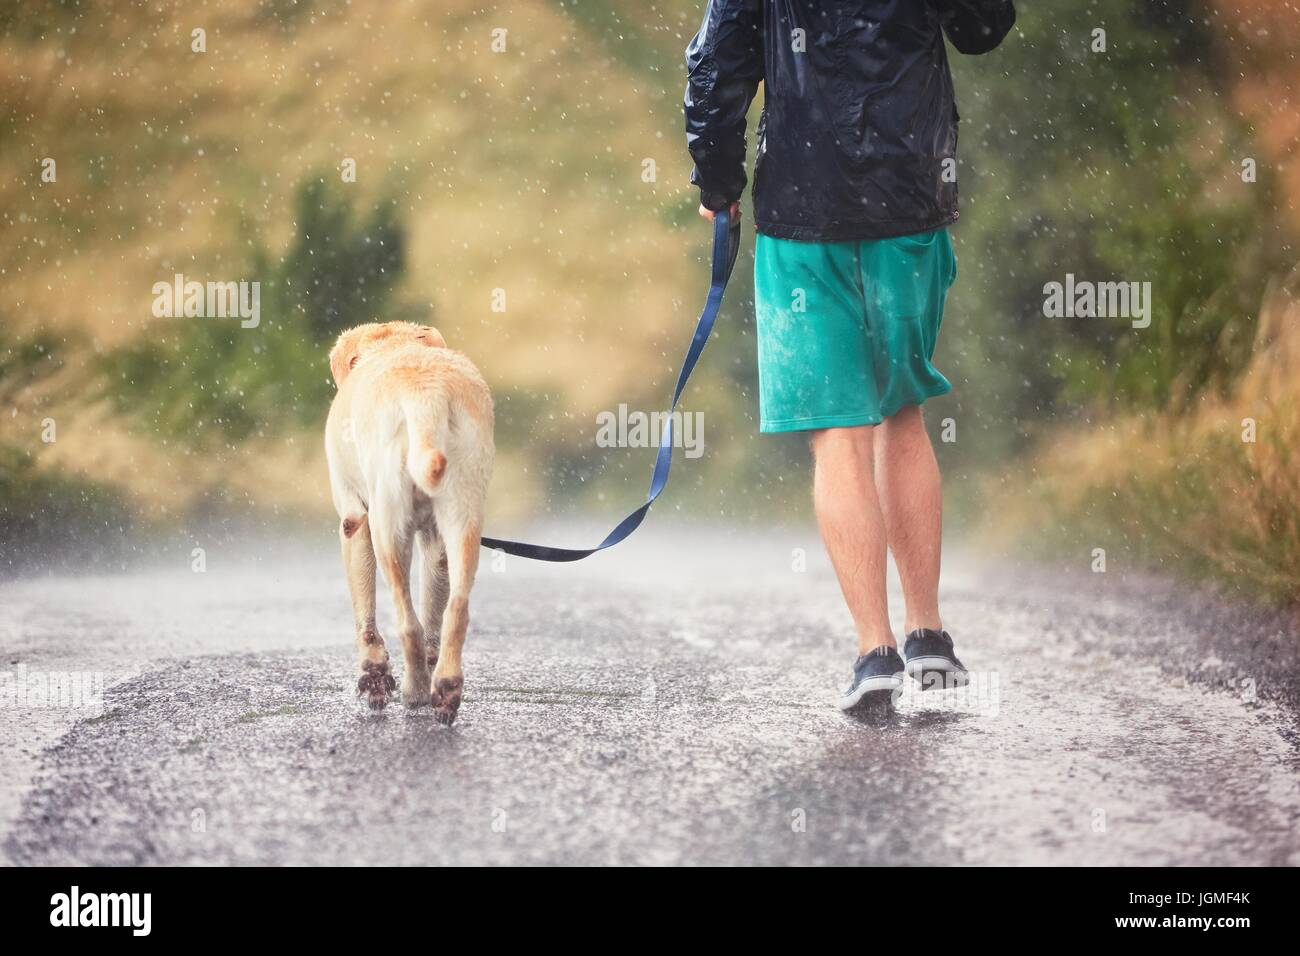 Young man running with his dog (labrador retriever) in heavy rain on the rural road. - Stock Image